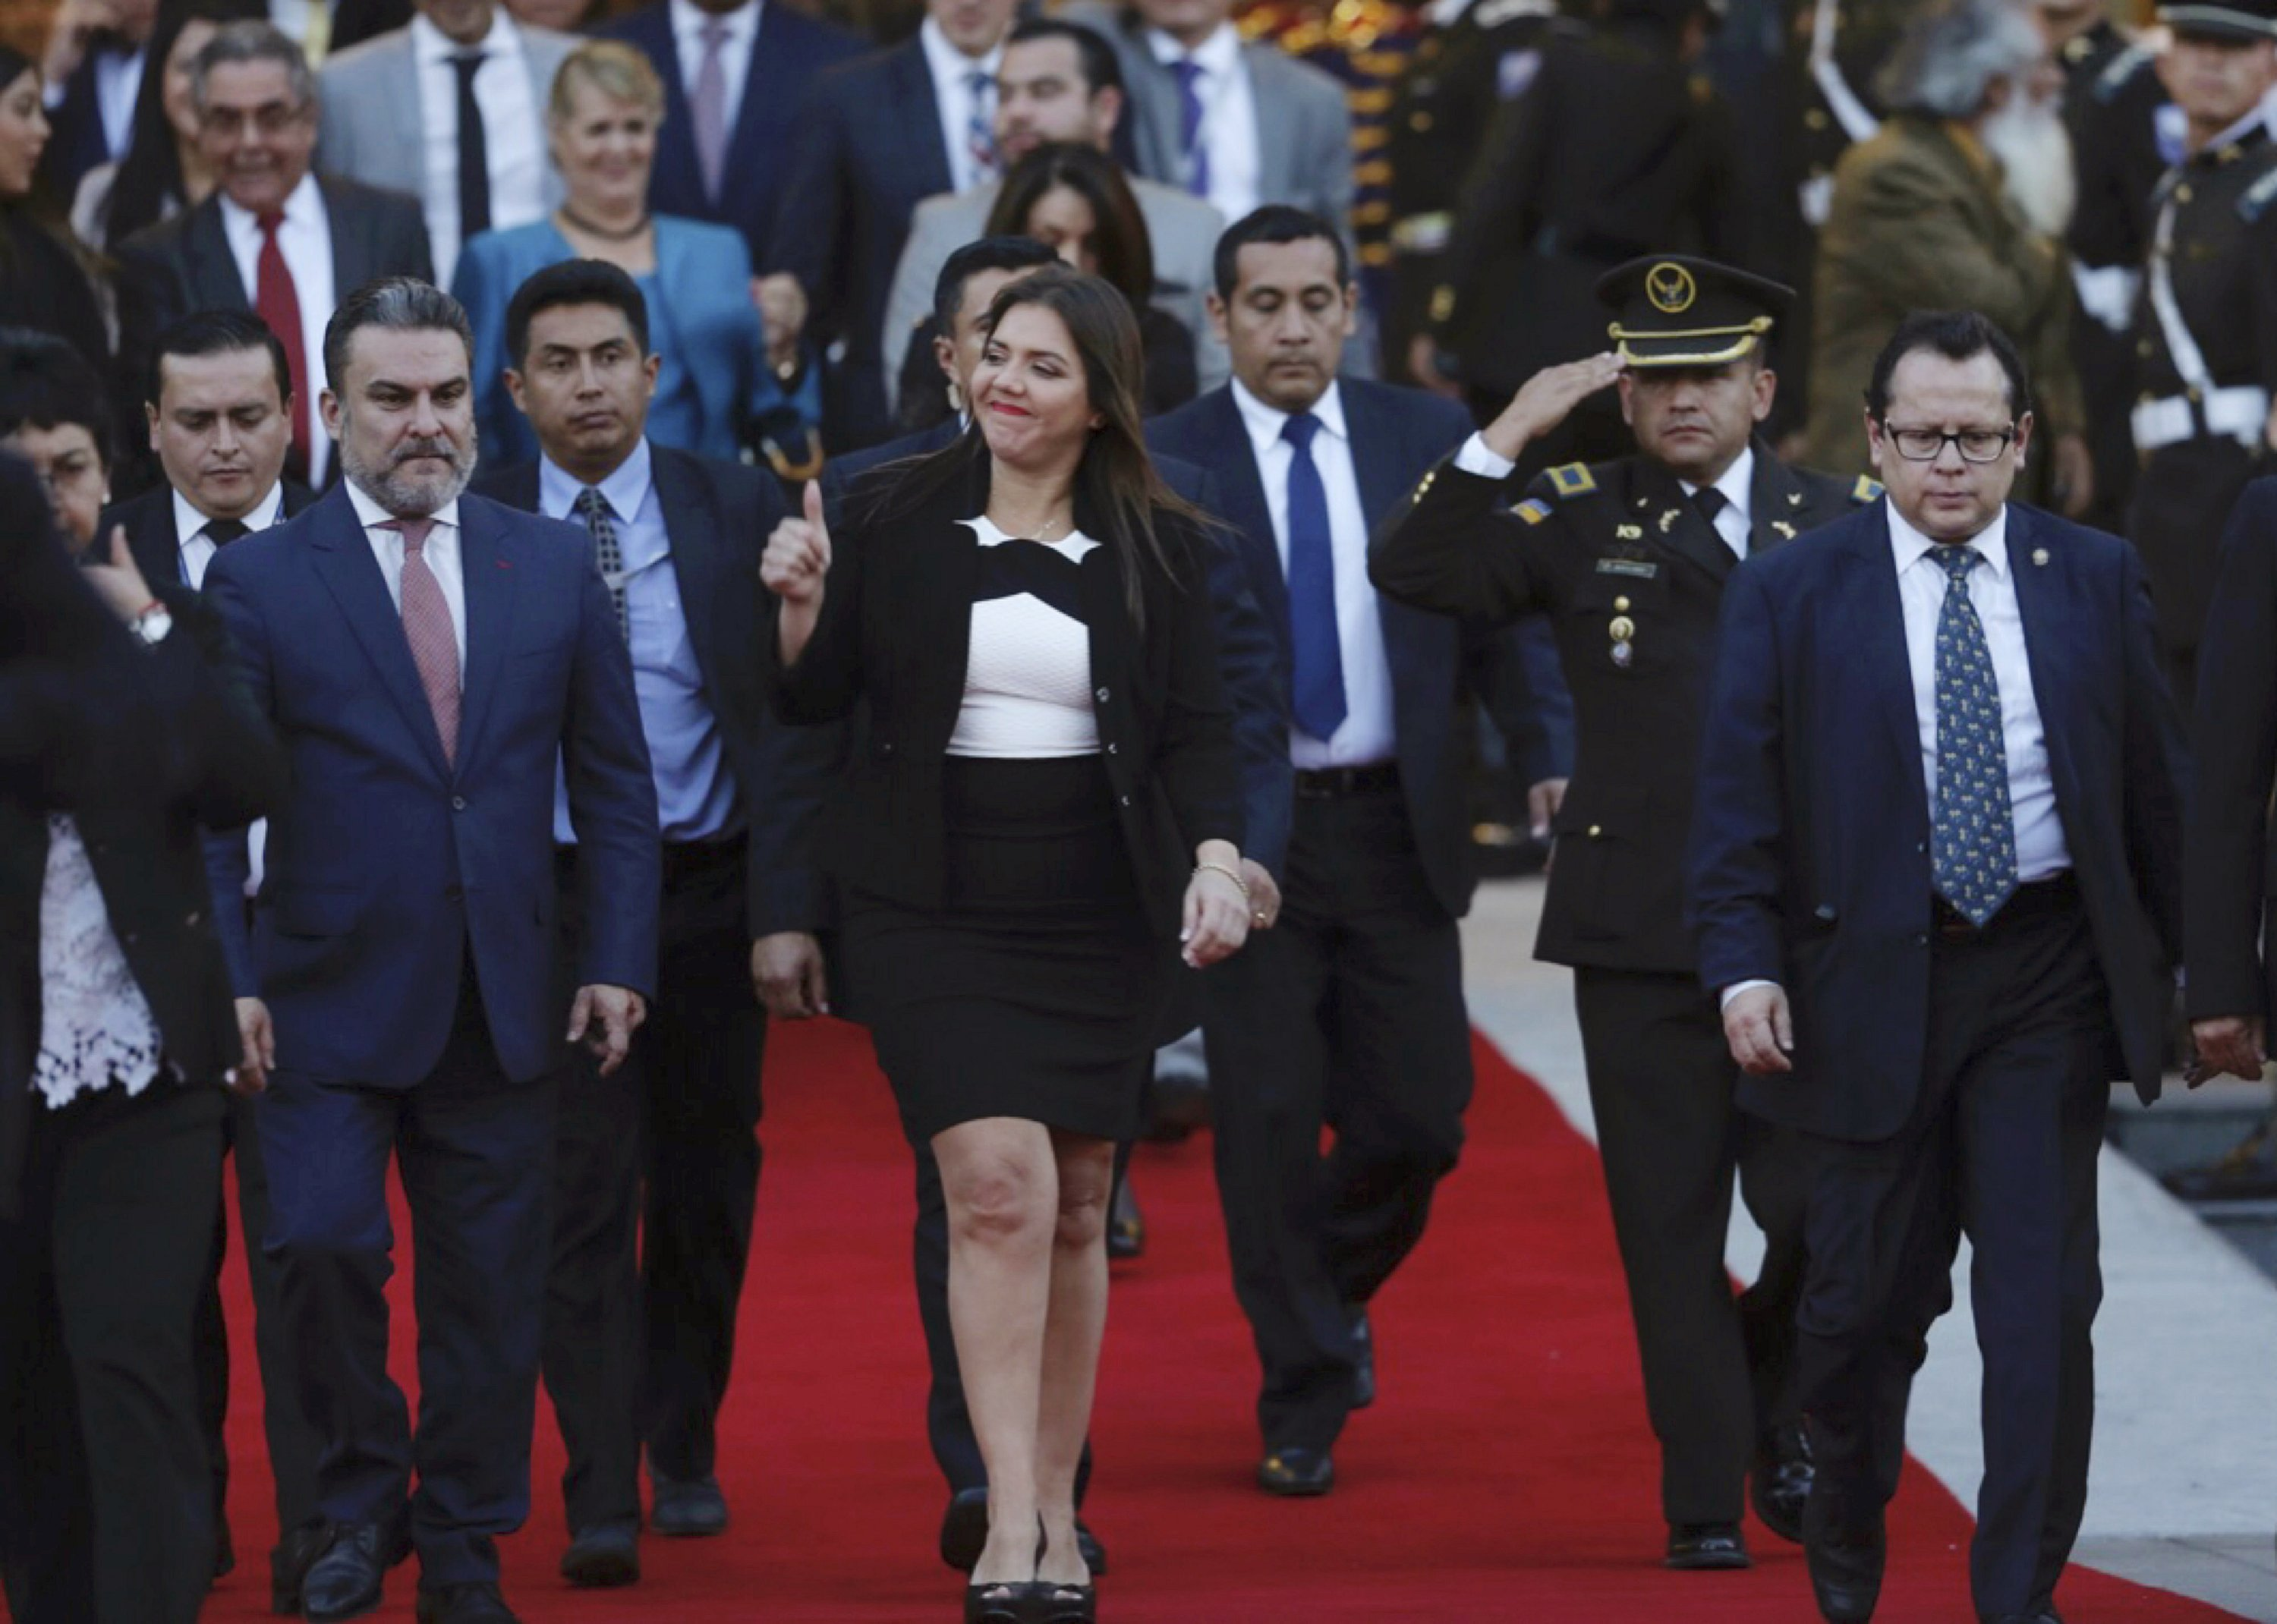 Ecuador VP removed, accused of taking kickbacks from aide